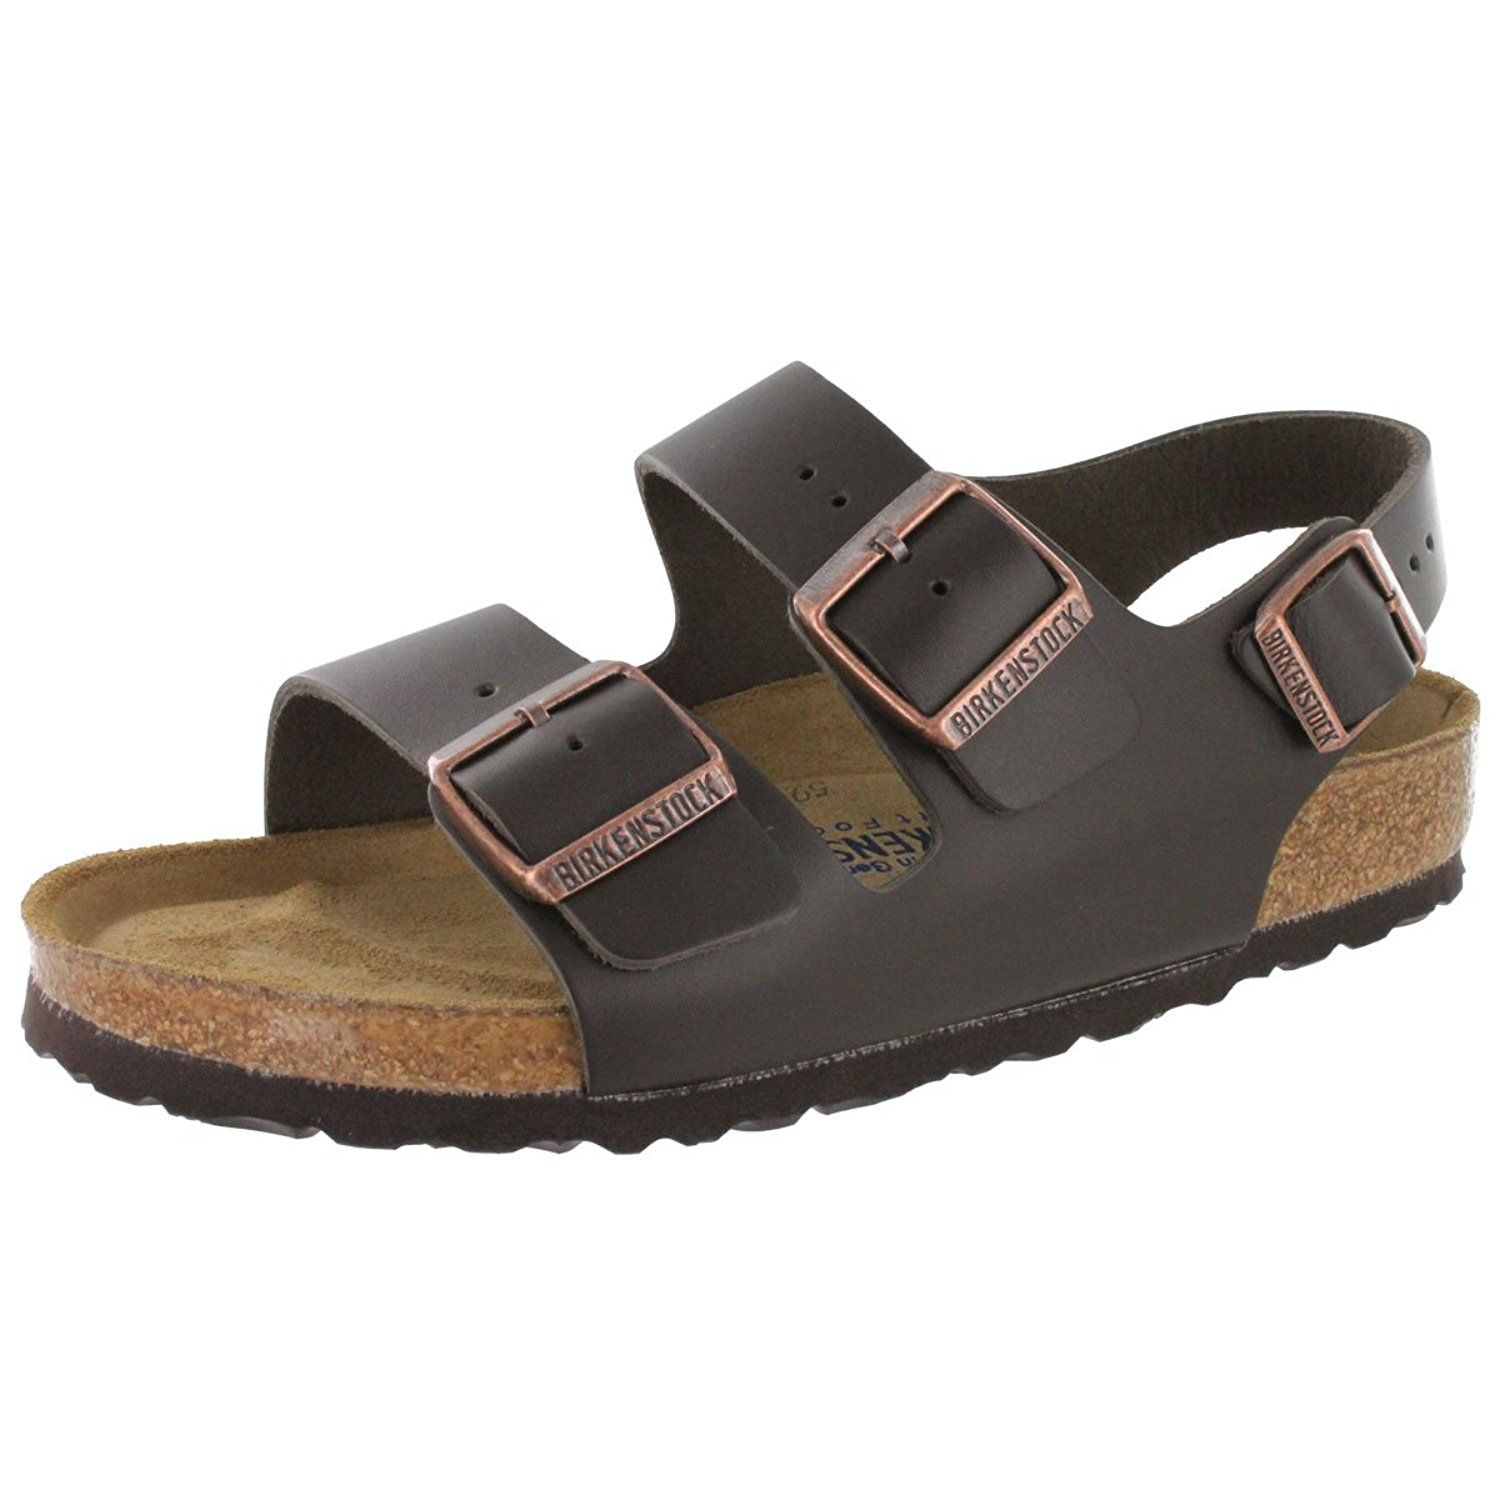 Birkenstock Women s Milano Backstrap Cork Footbed Sandal    Awesome outdoor  product. Click the image   Birkenstock sandals f802e8b775c